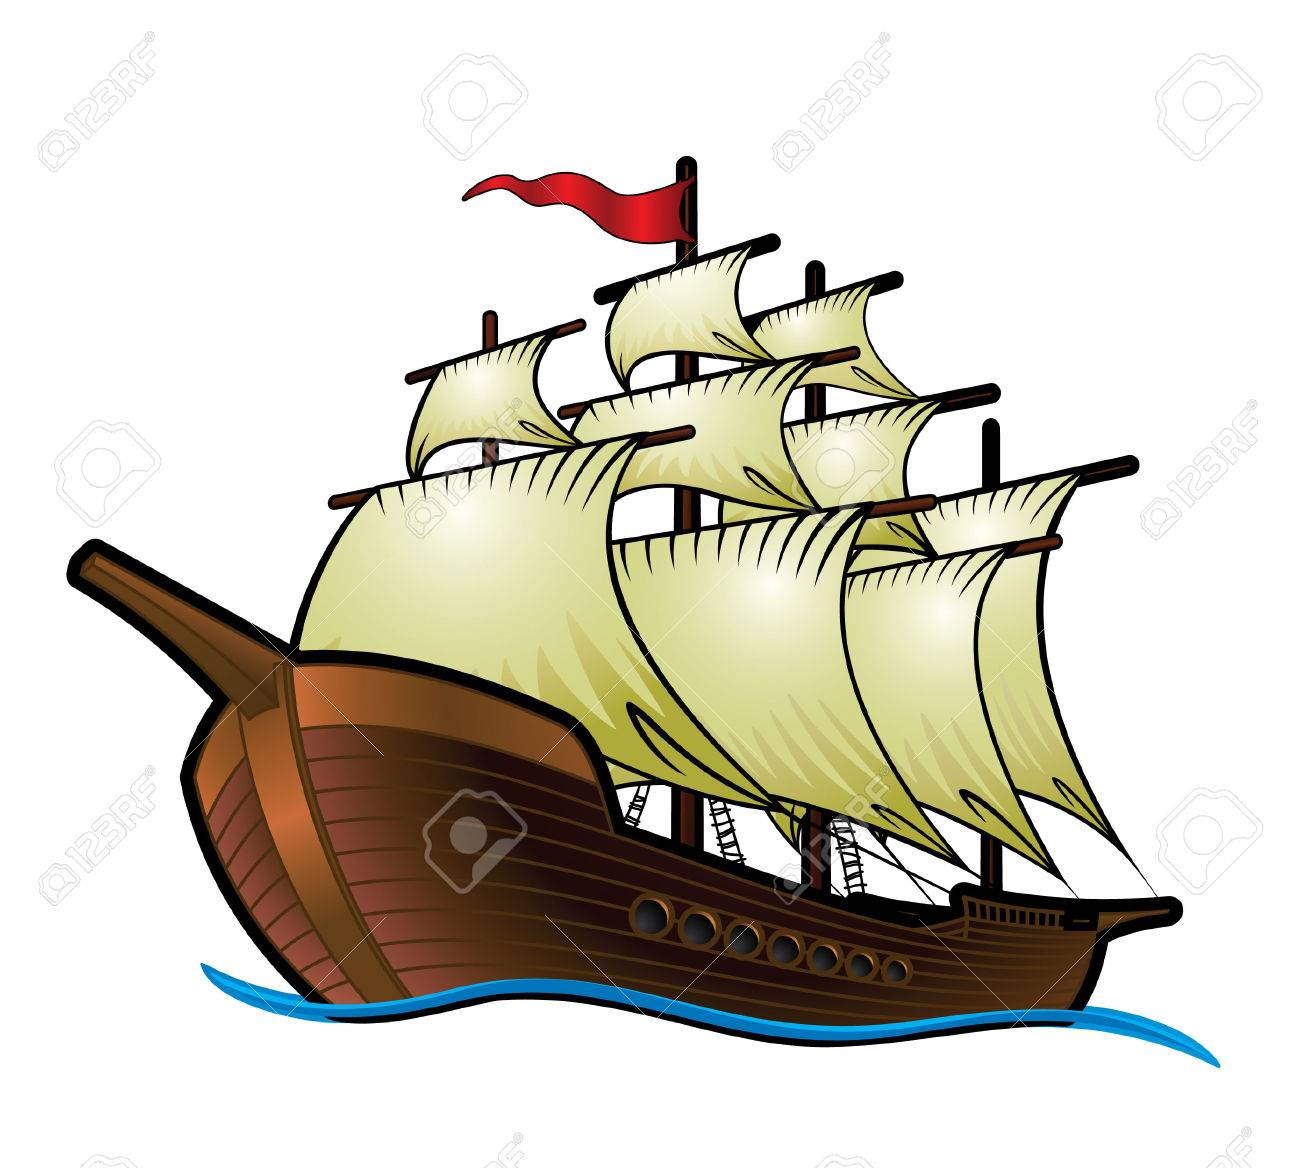 1300x1168 2,084 Galleon Stock Vector Illustration And Royalty Free Galleon